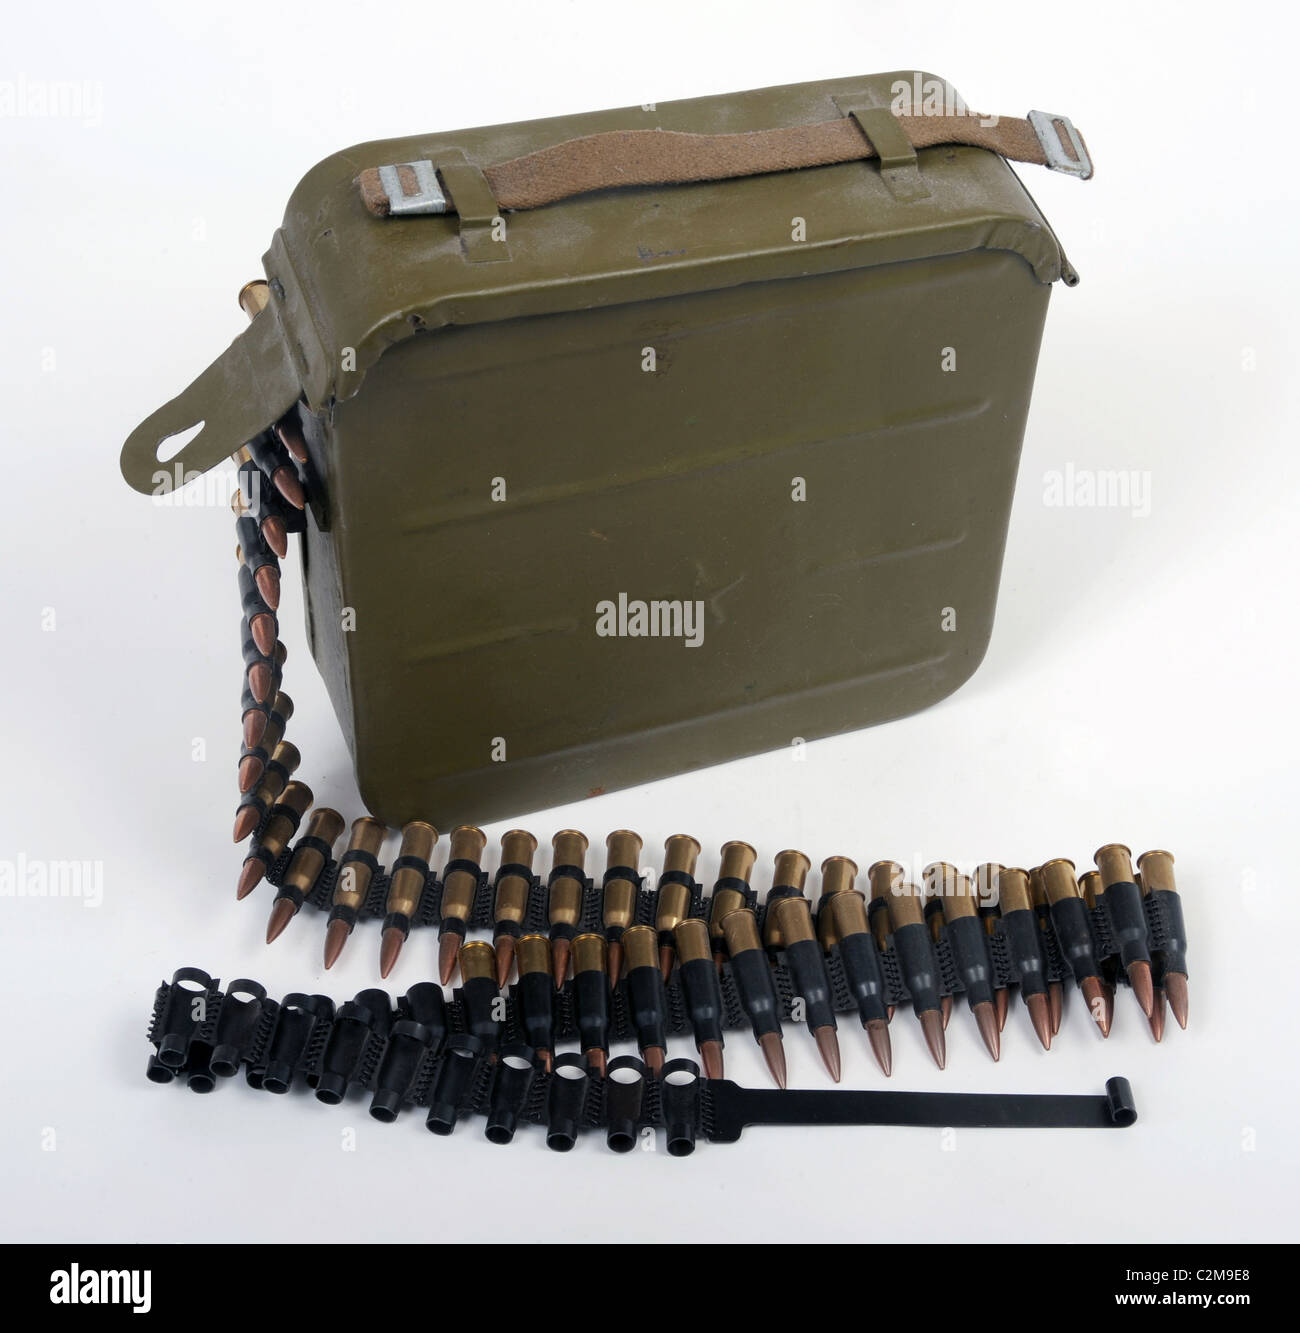 A soviet Russian 7.62mm belt fed ammunition container with a belt of machine gun bullets. - Stock Image